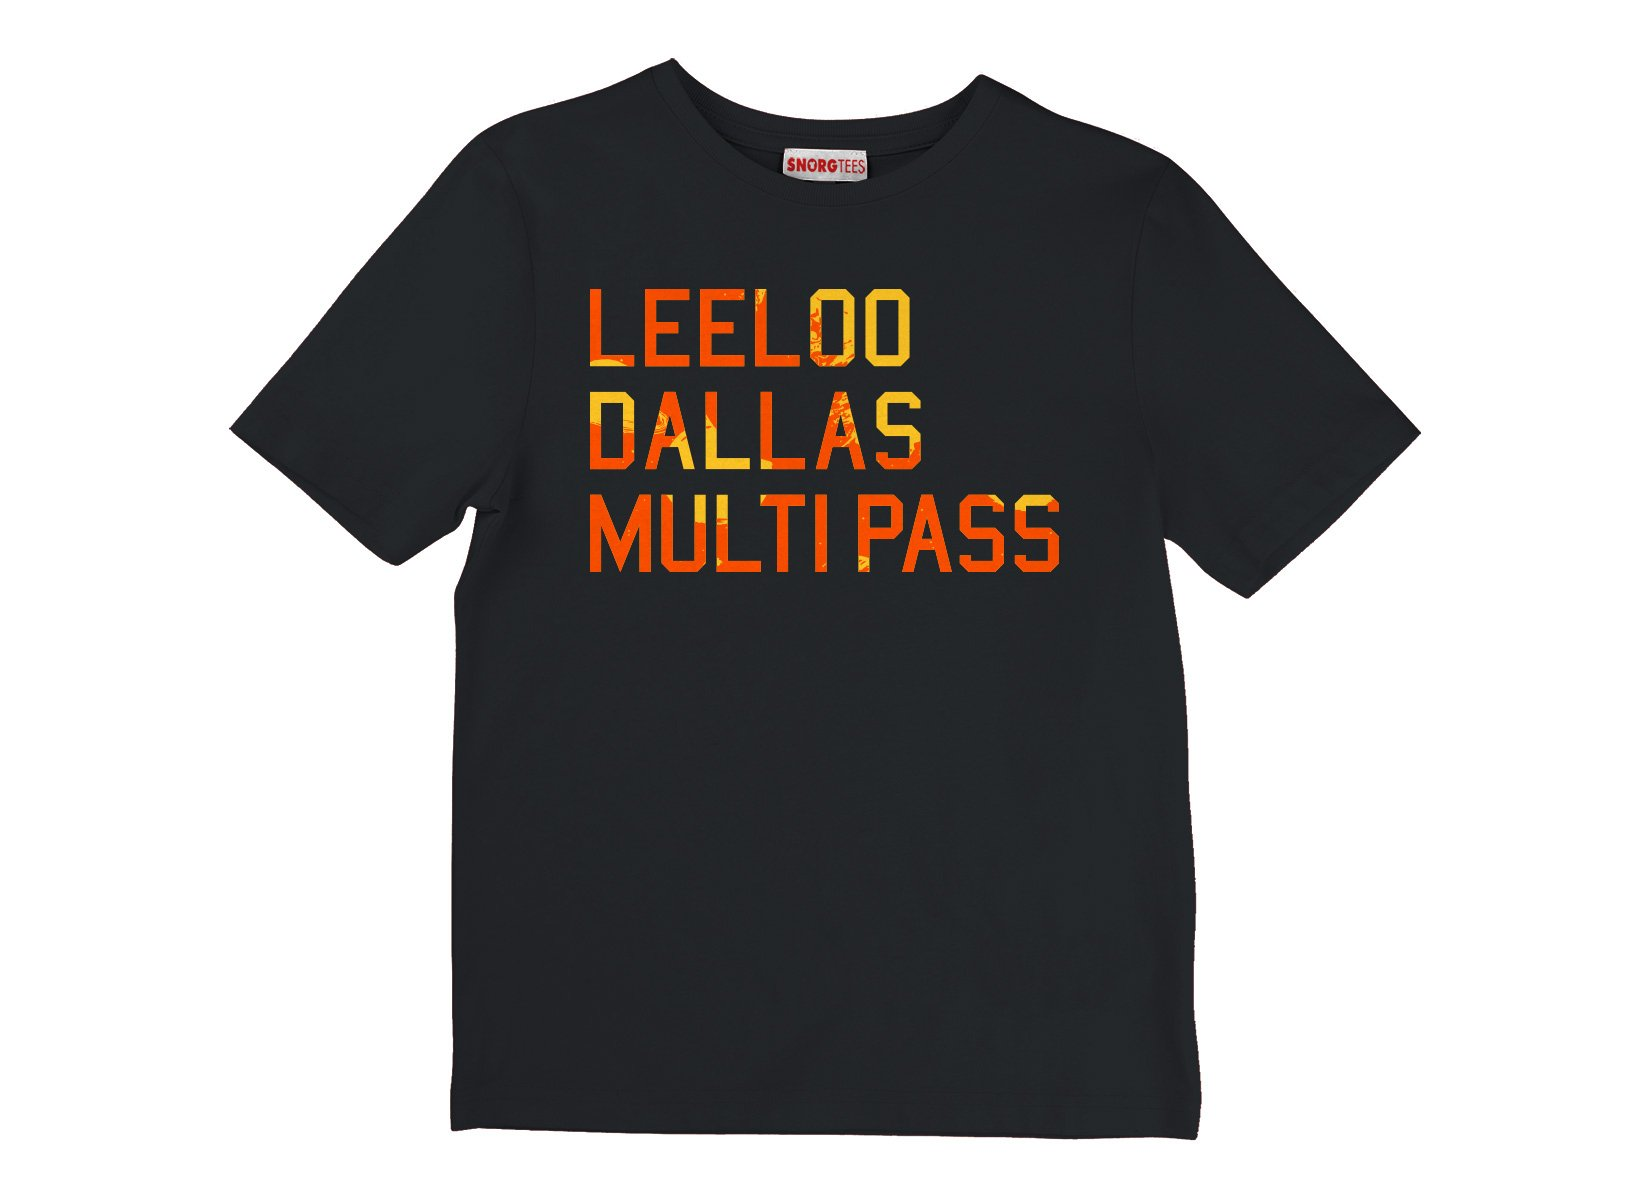 Leeloo Dallas Multipass on Kids T-Shirt